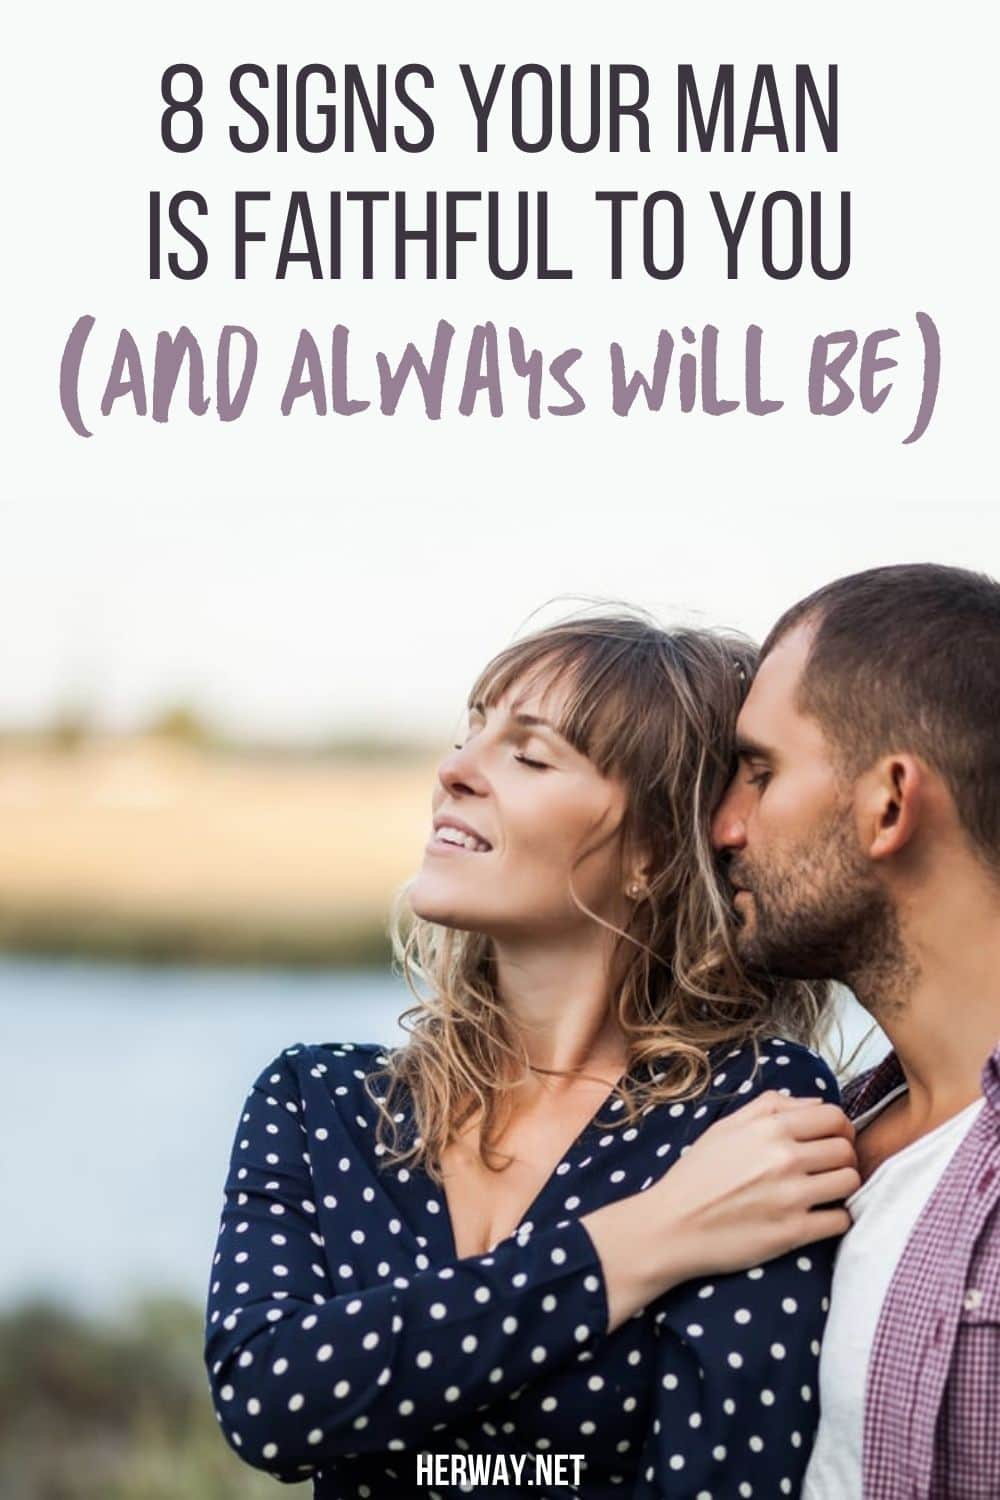 8 Signs Your Man Is Faithful To You (And Always Will Be)